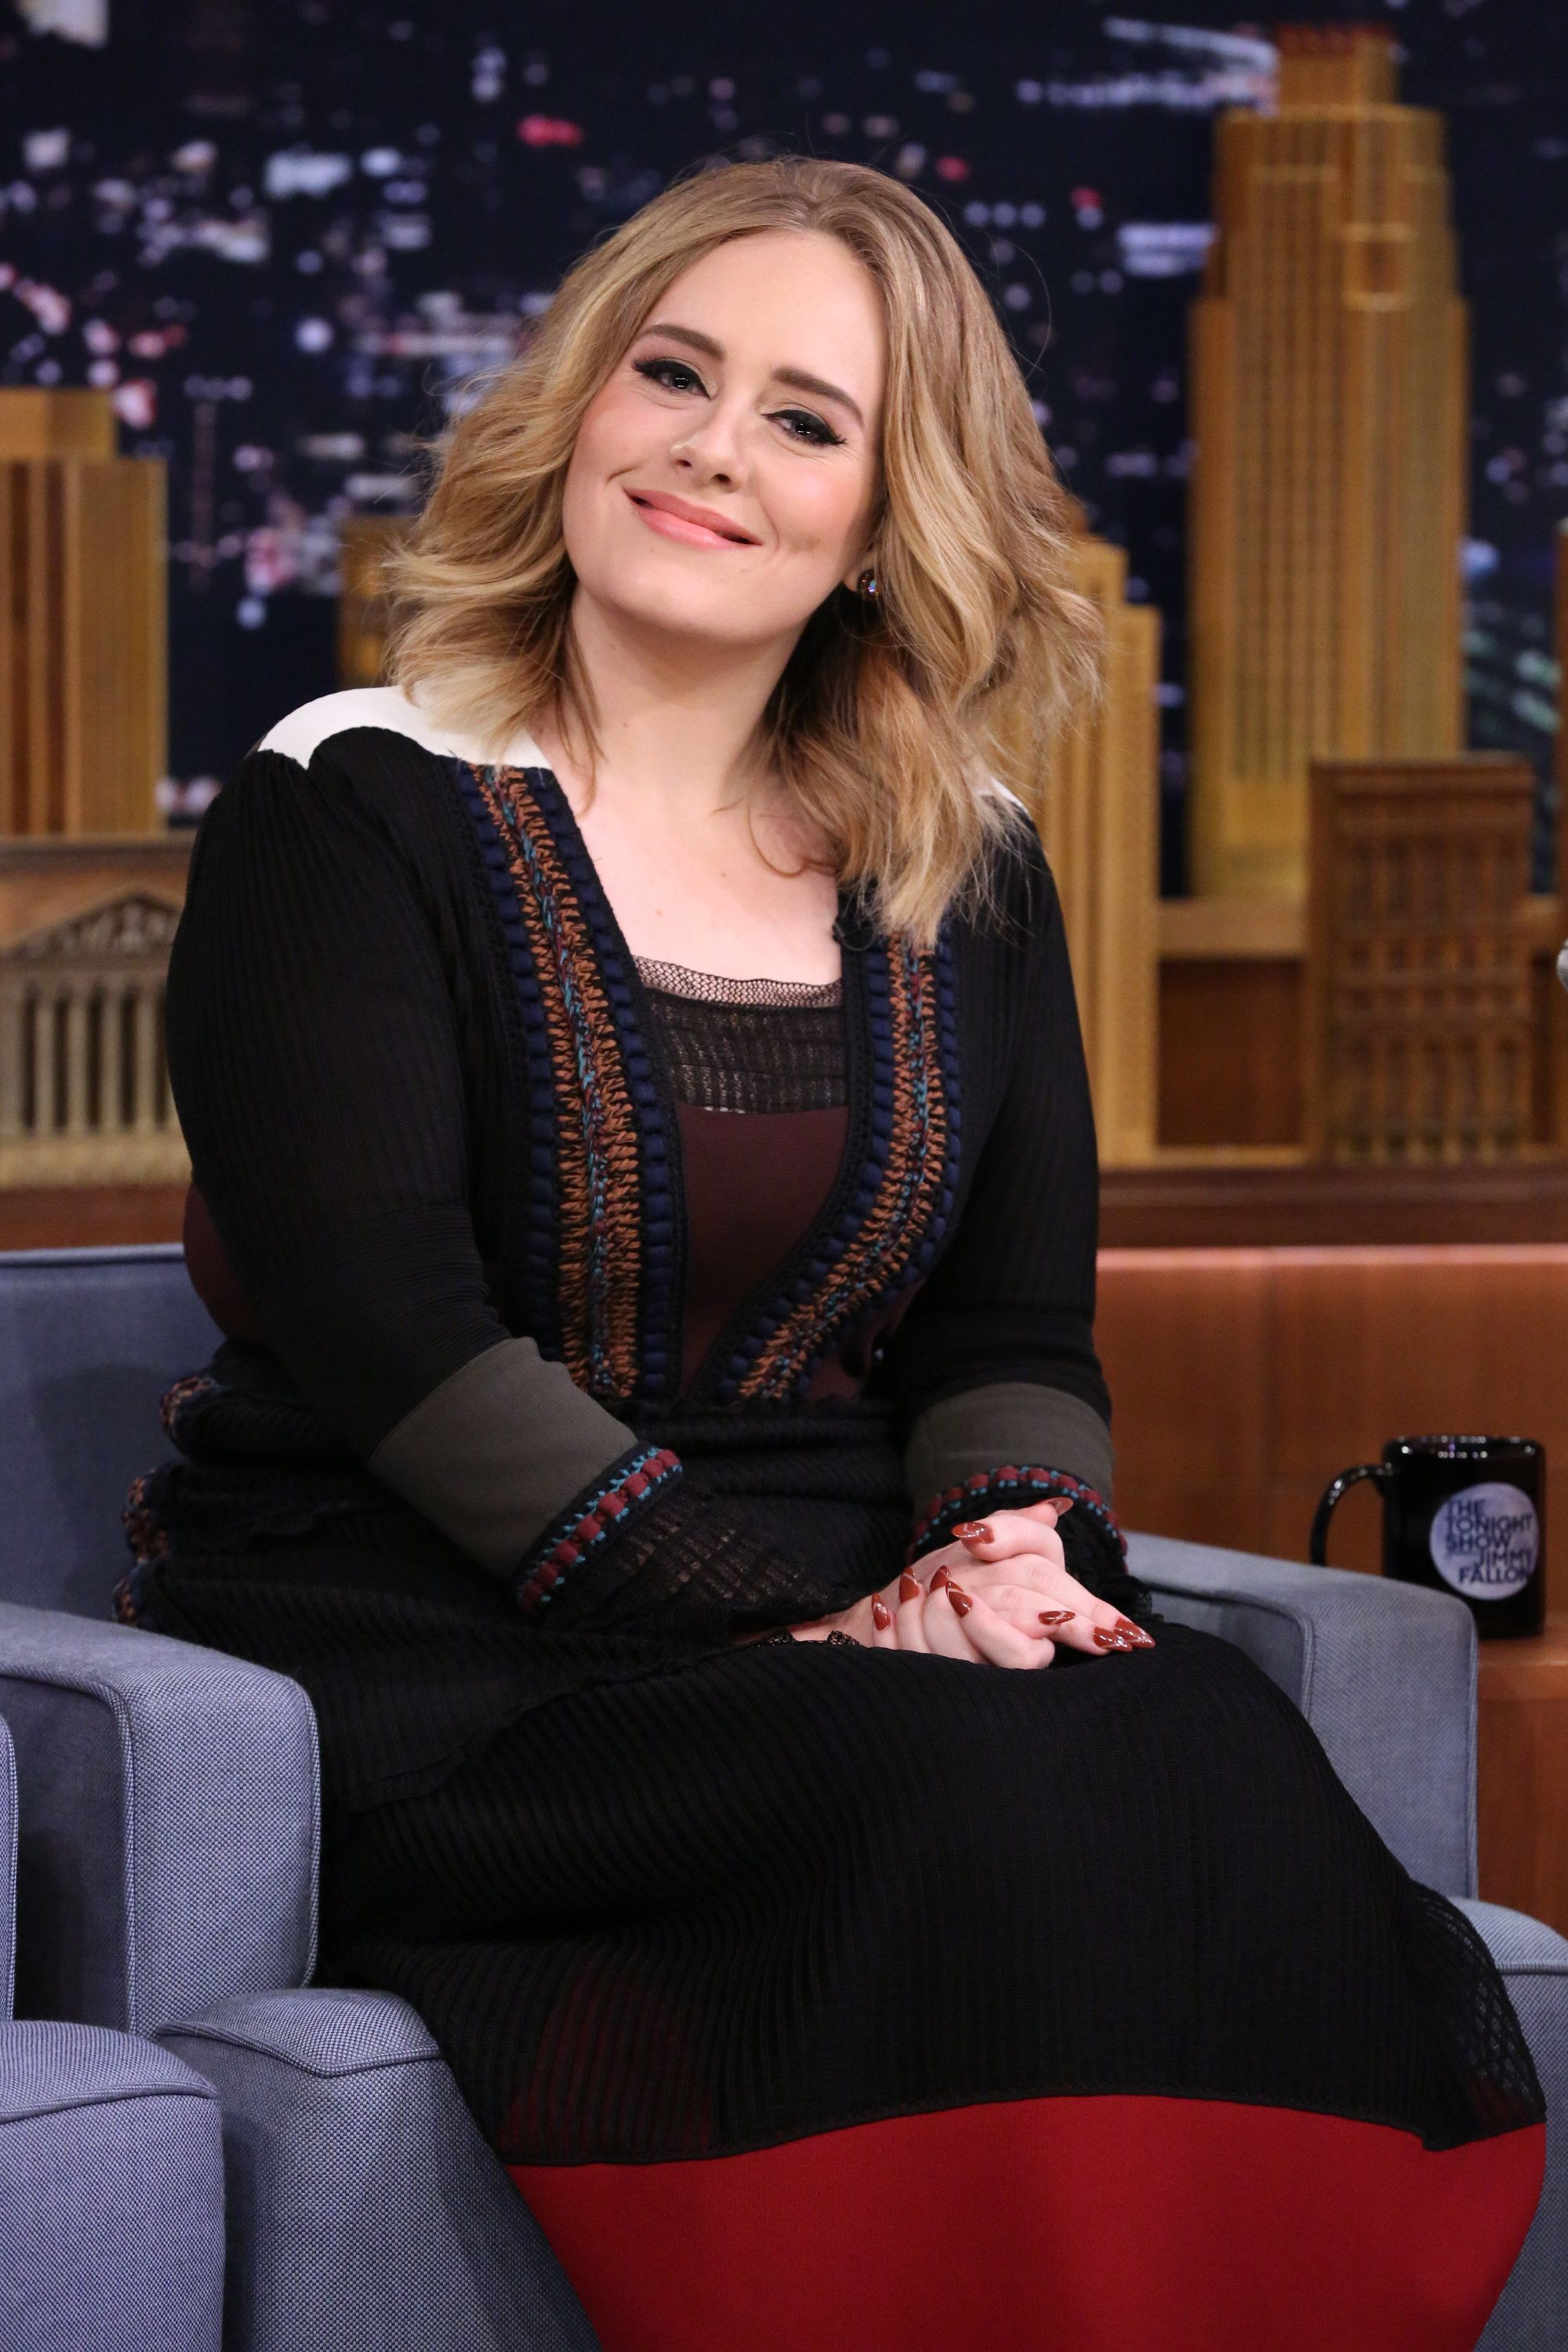 THE TONIGHT SHOW STARRING JIMMY FALLON -- Episode 0373 -- Pictured: Singer Adele on November 23, 2015 -- (Photo by: Douglas Gorenstein/NBC/NBCU Photo Bank via Getty Images)